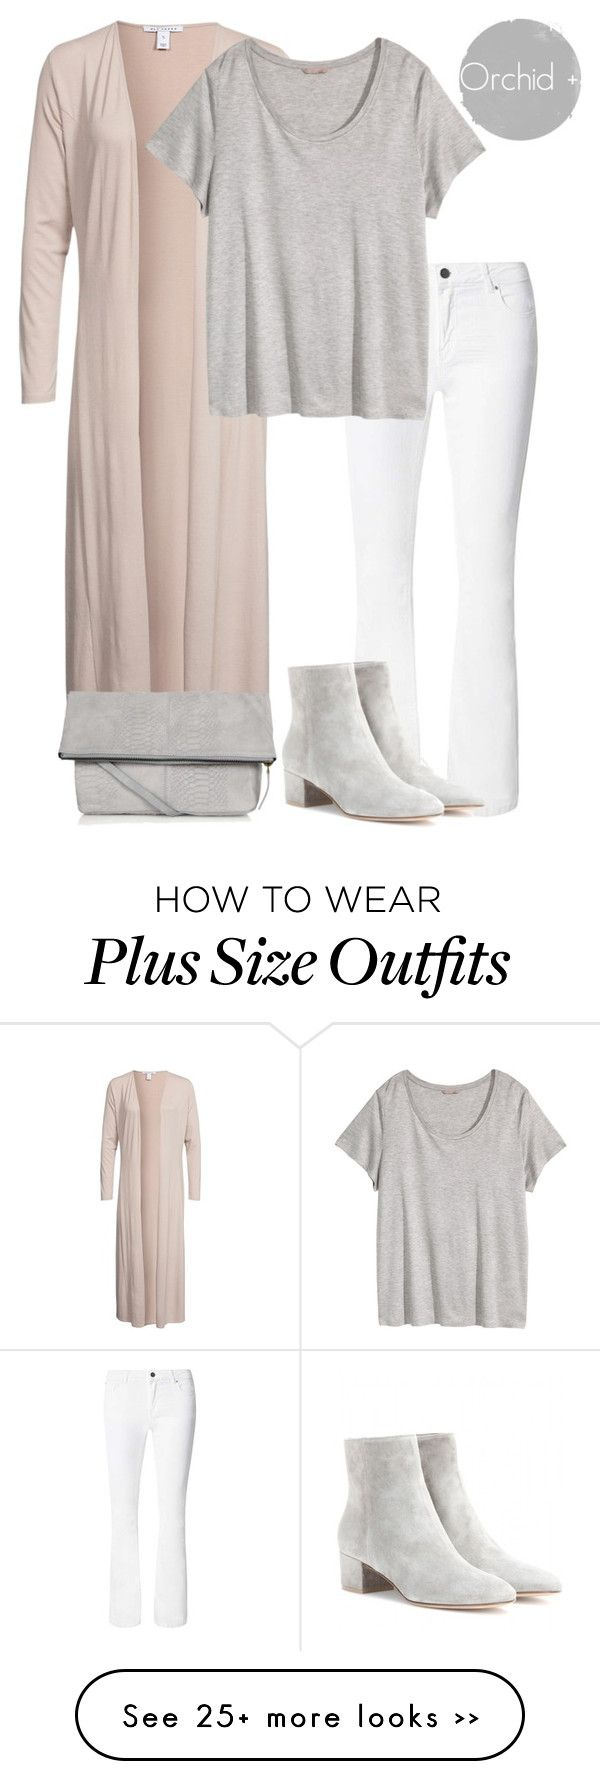 """""""Everyday Gray Plus Size"""" by orchidplus on Polyvore"""